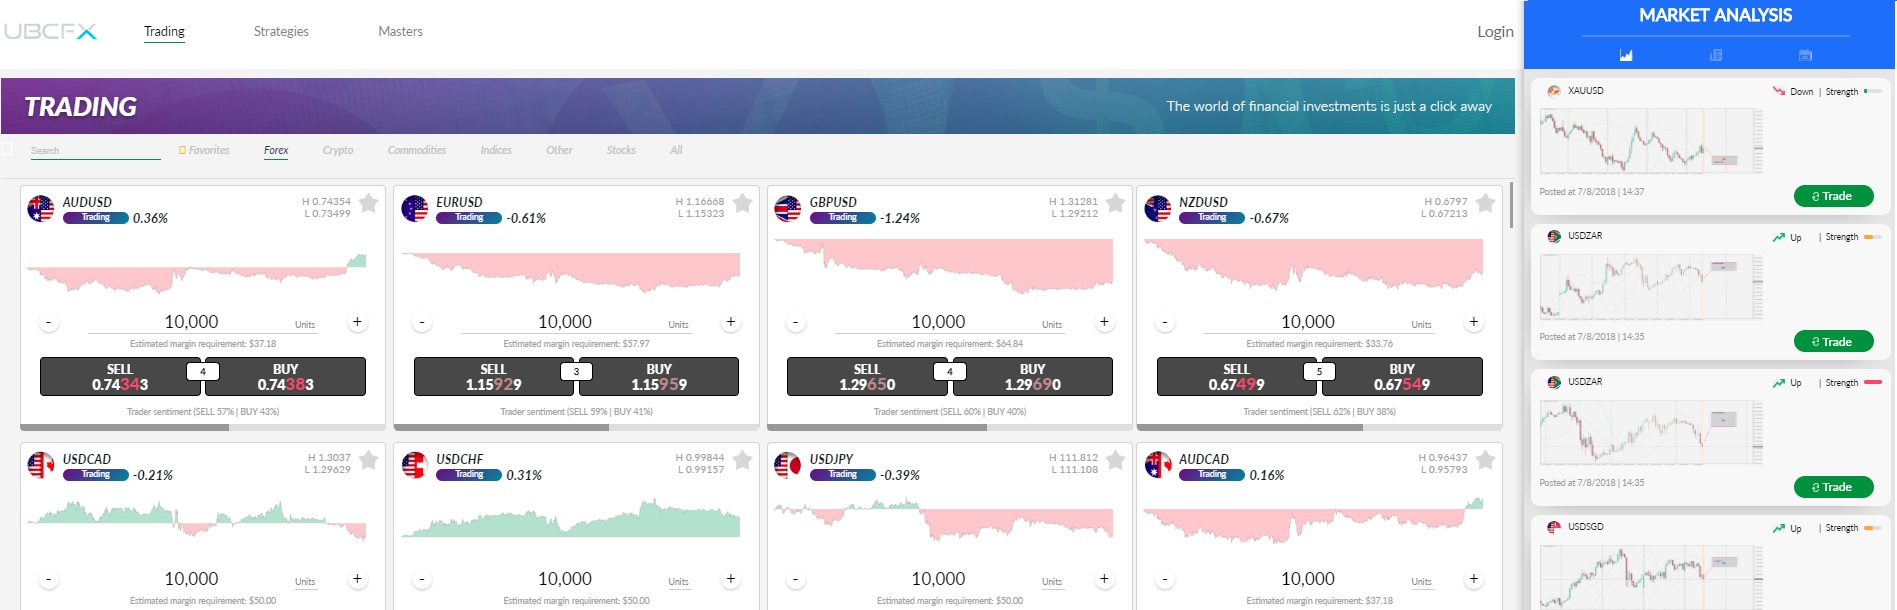 UBCFX activ8 trading platform for trading litecoin and other cryptocurrencies